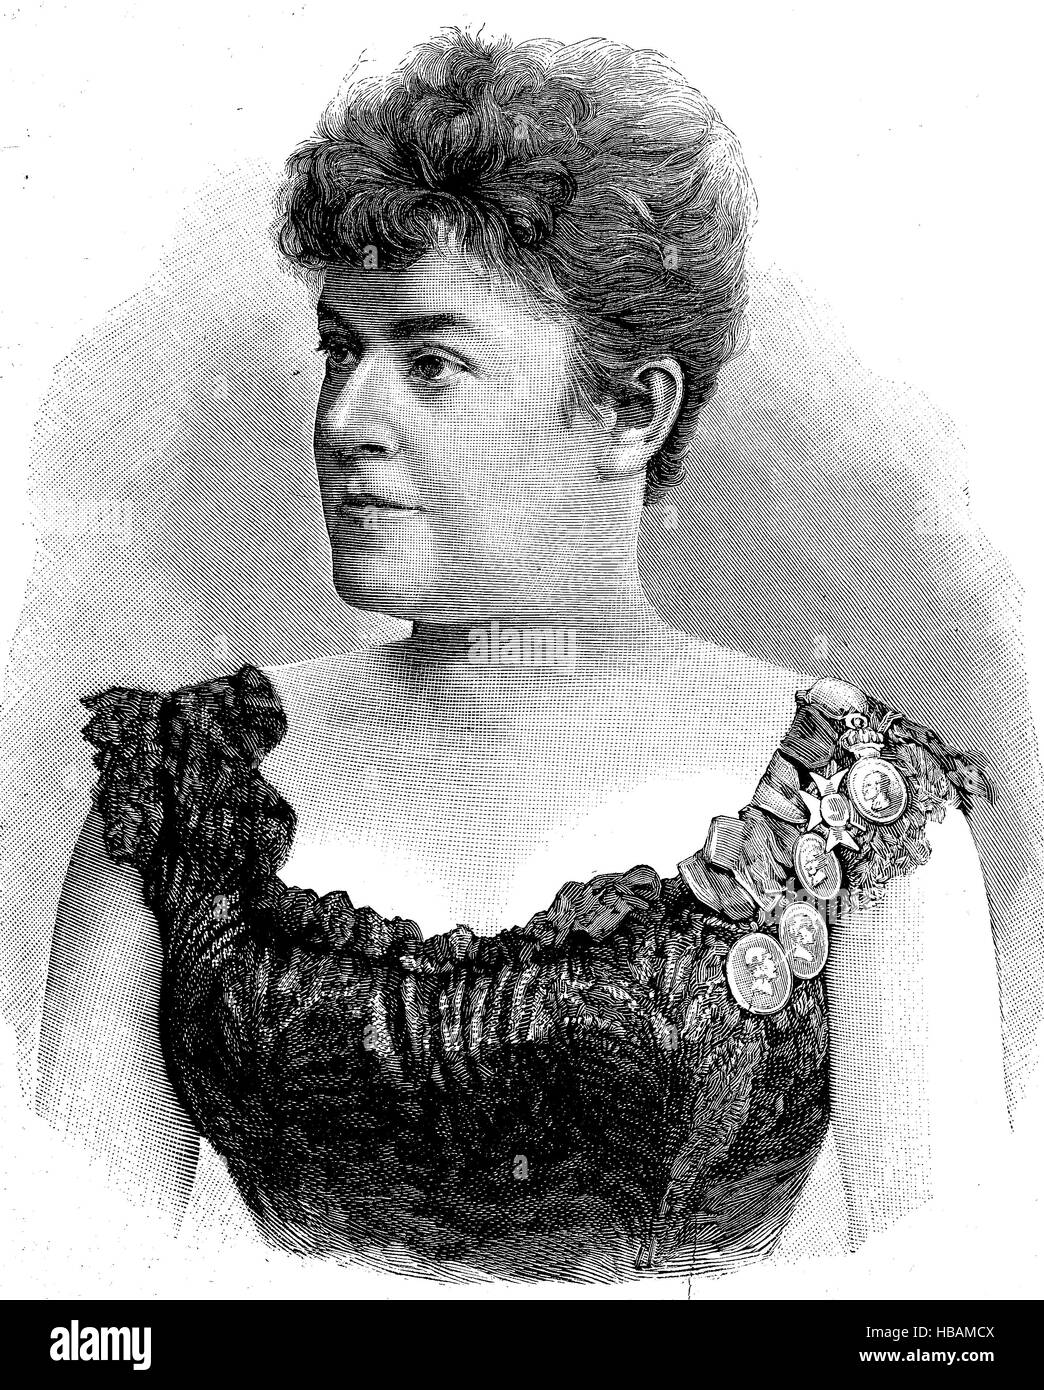 Therese Malten was the stage name of Therese Mueller, 21 June 1855 - 2 January 1930, a well-known German dramatic - Stock Image